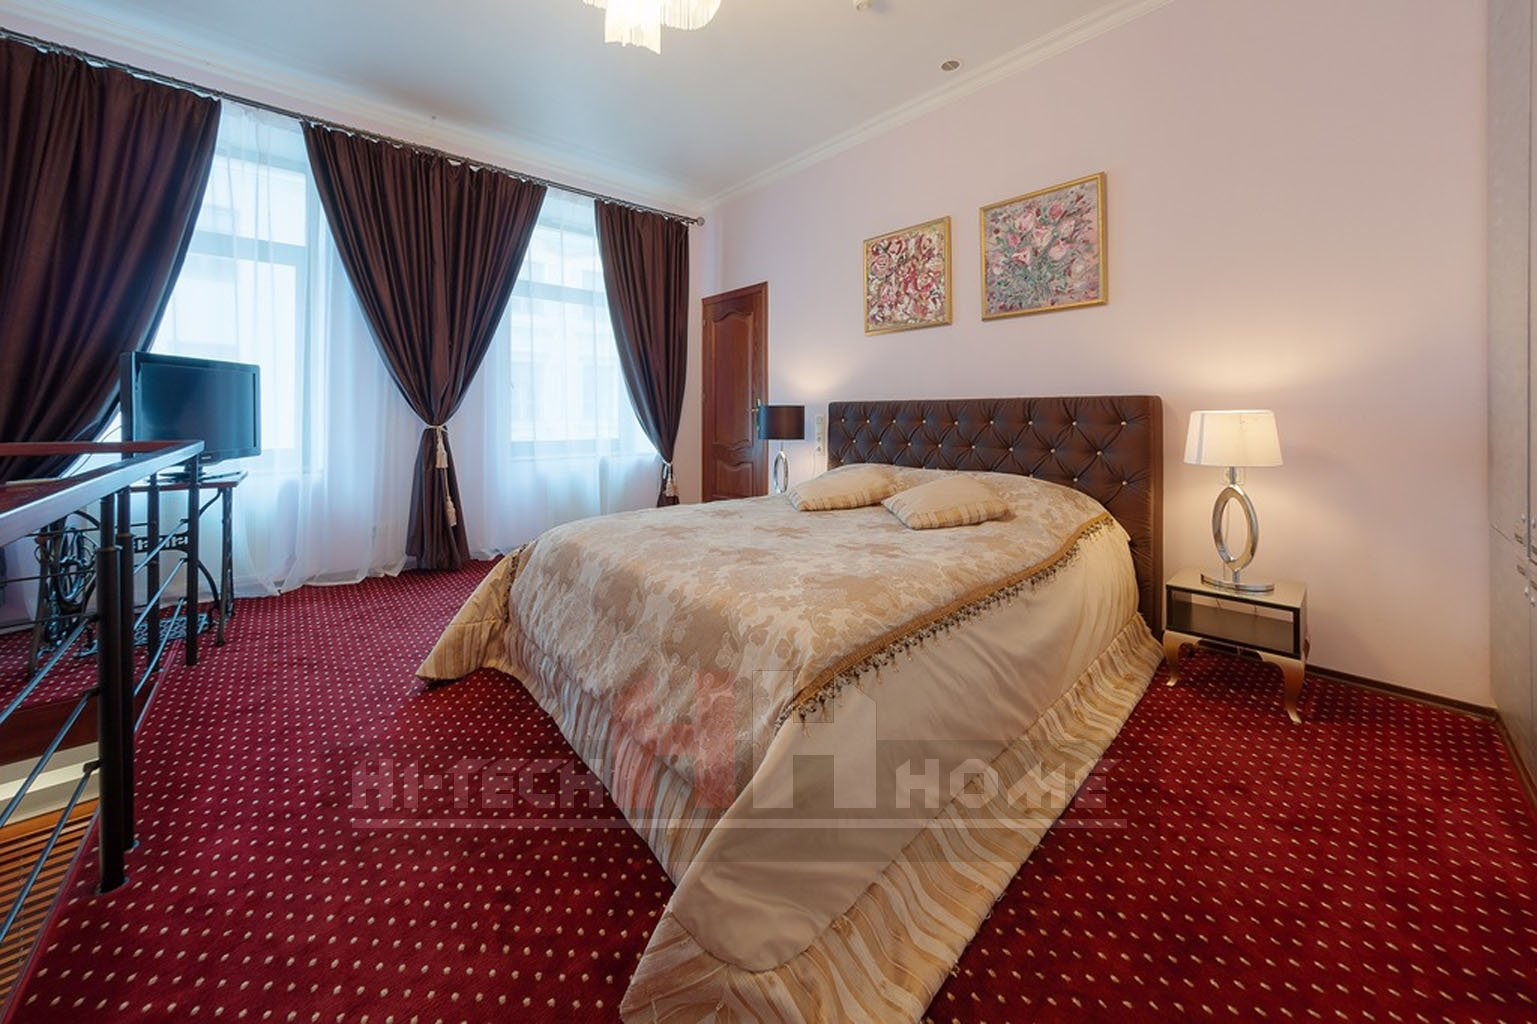 Of apartments for short term rent in St. Petersburg